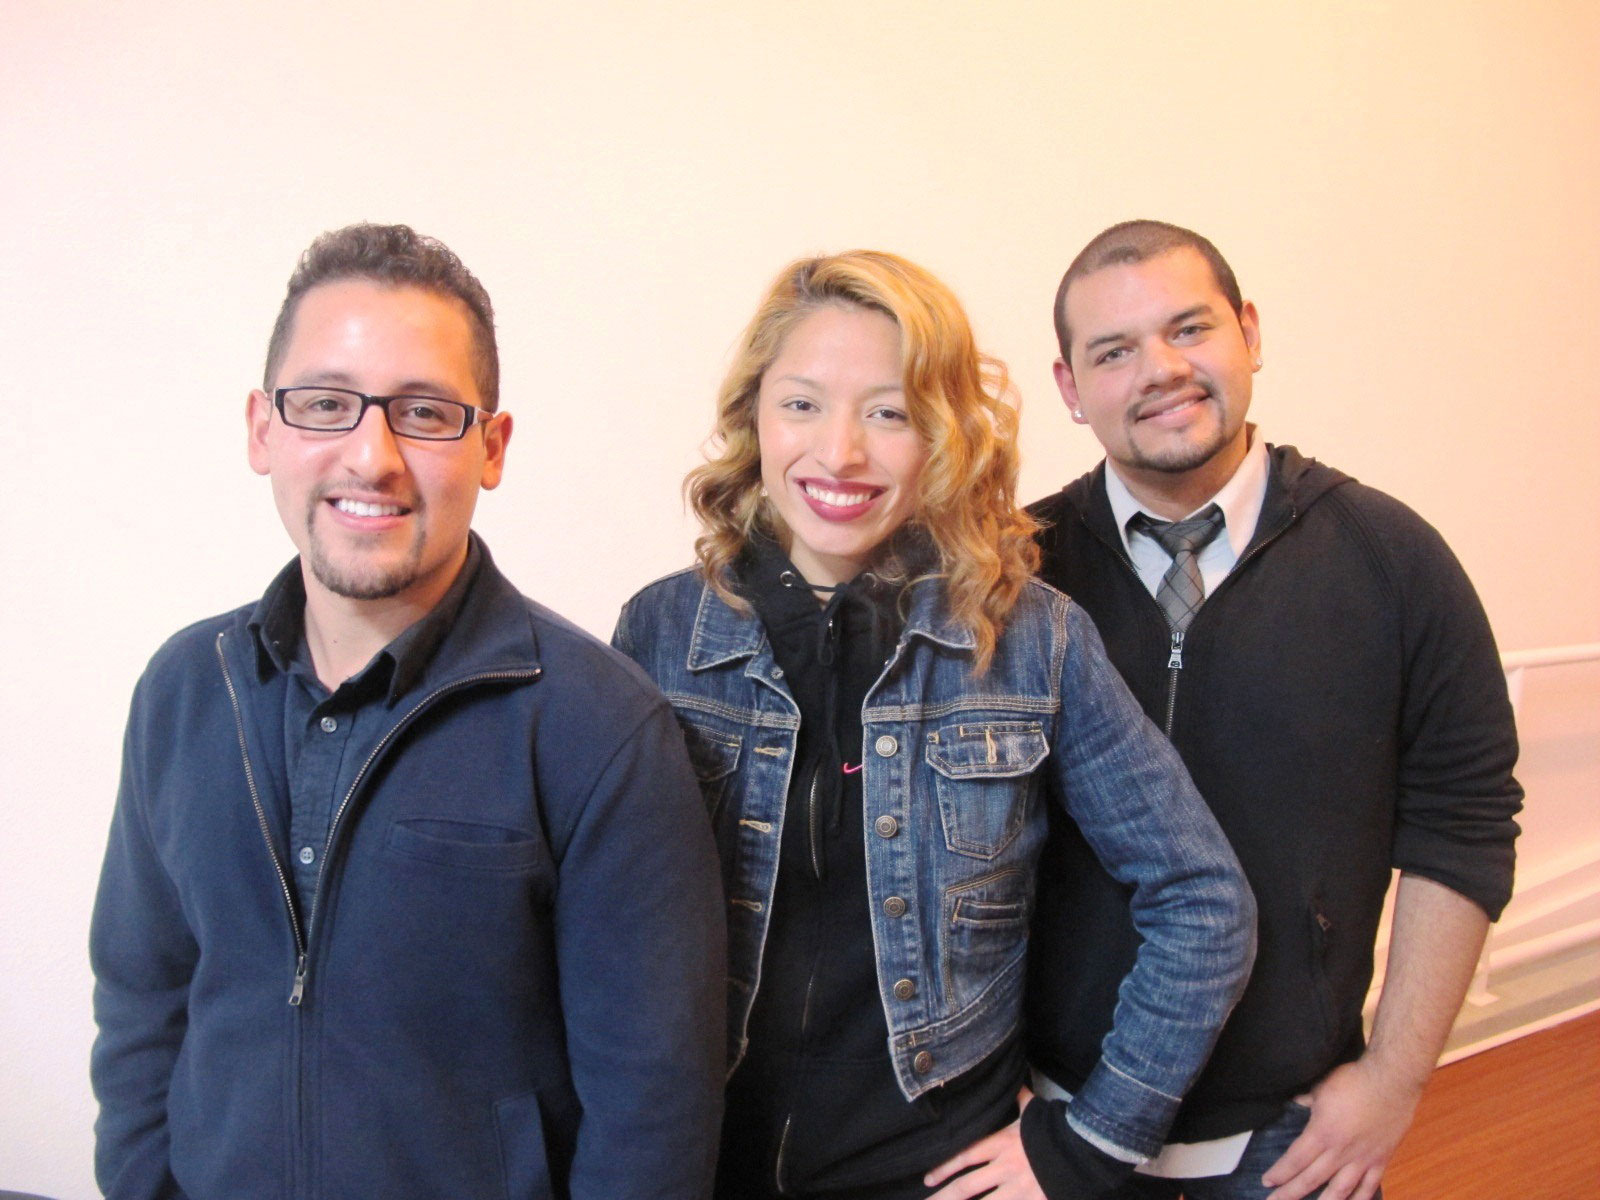 Participants in the Lending Circles for Dreamers loan program at Mission Asset fund.